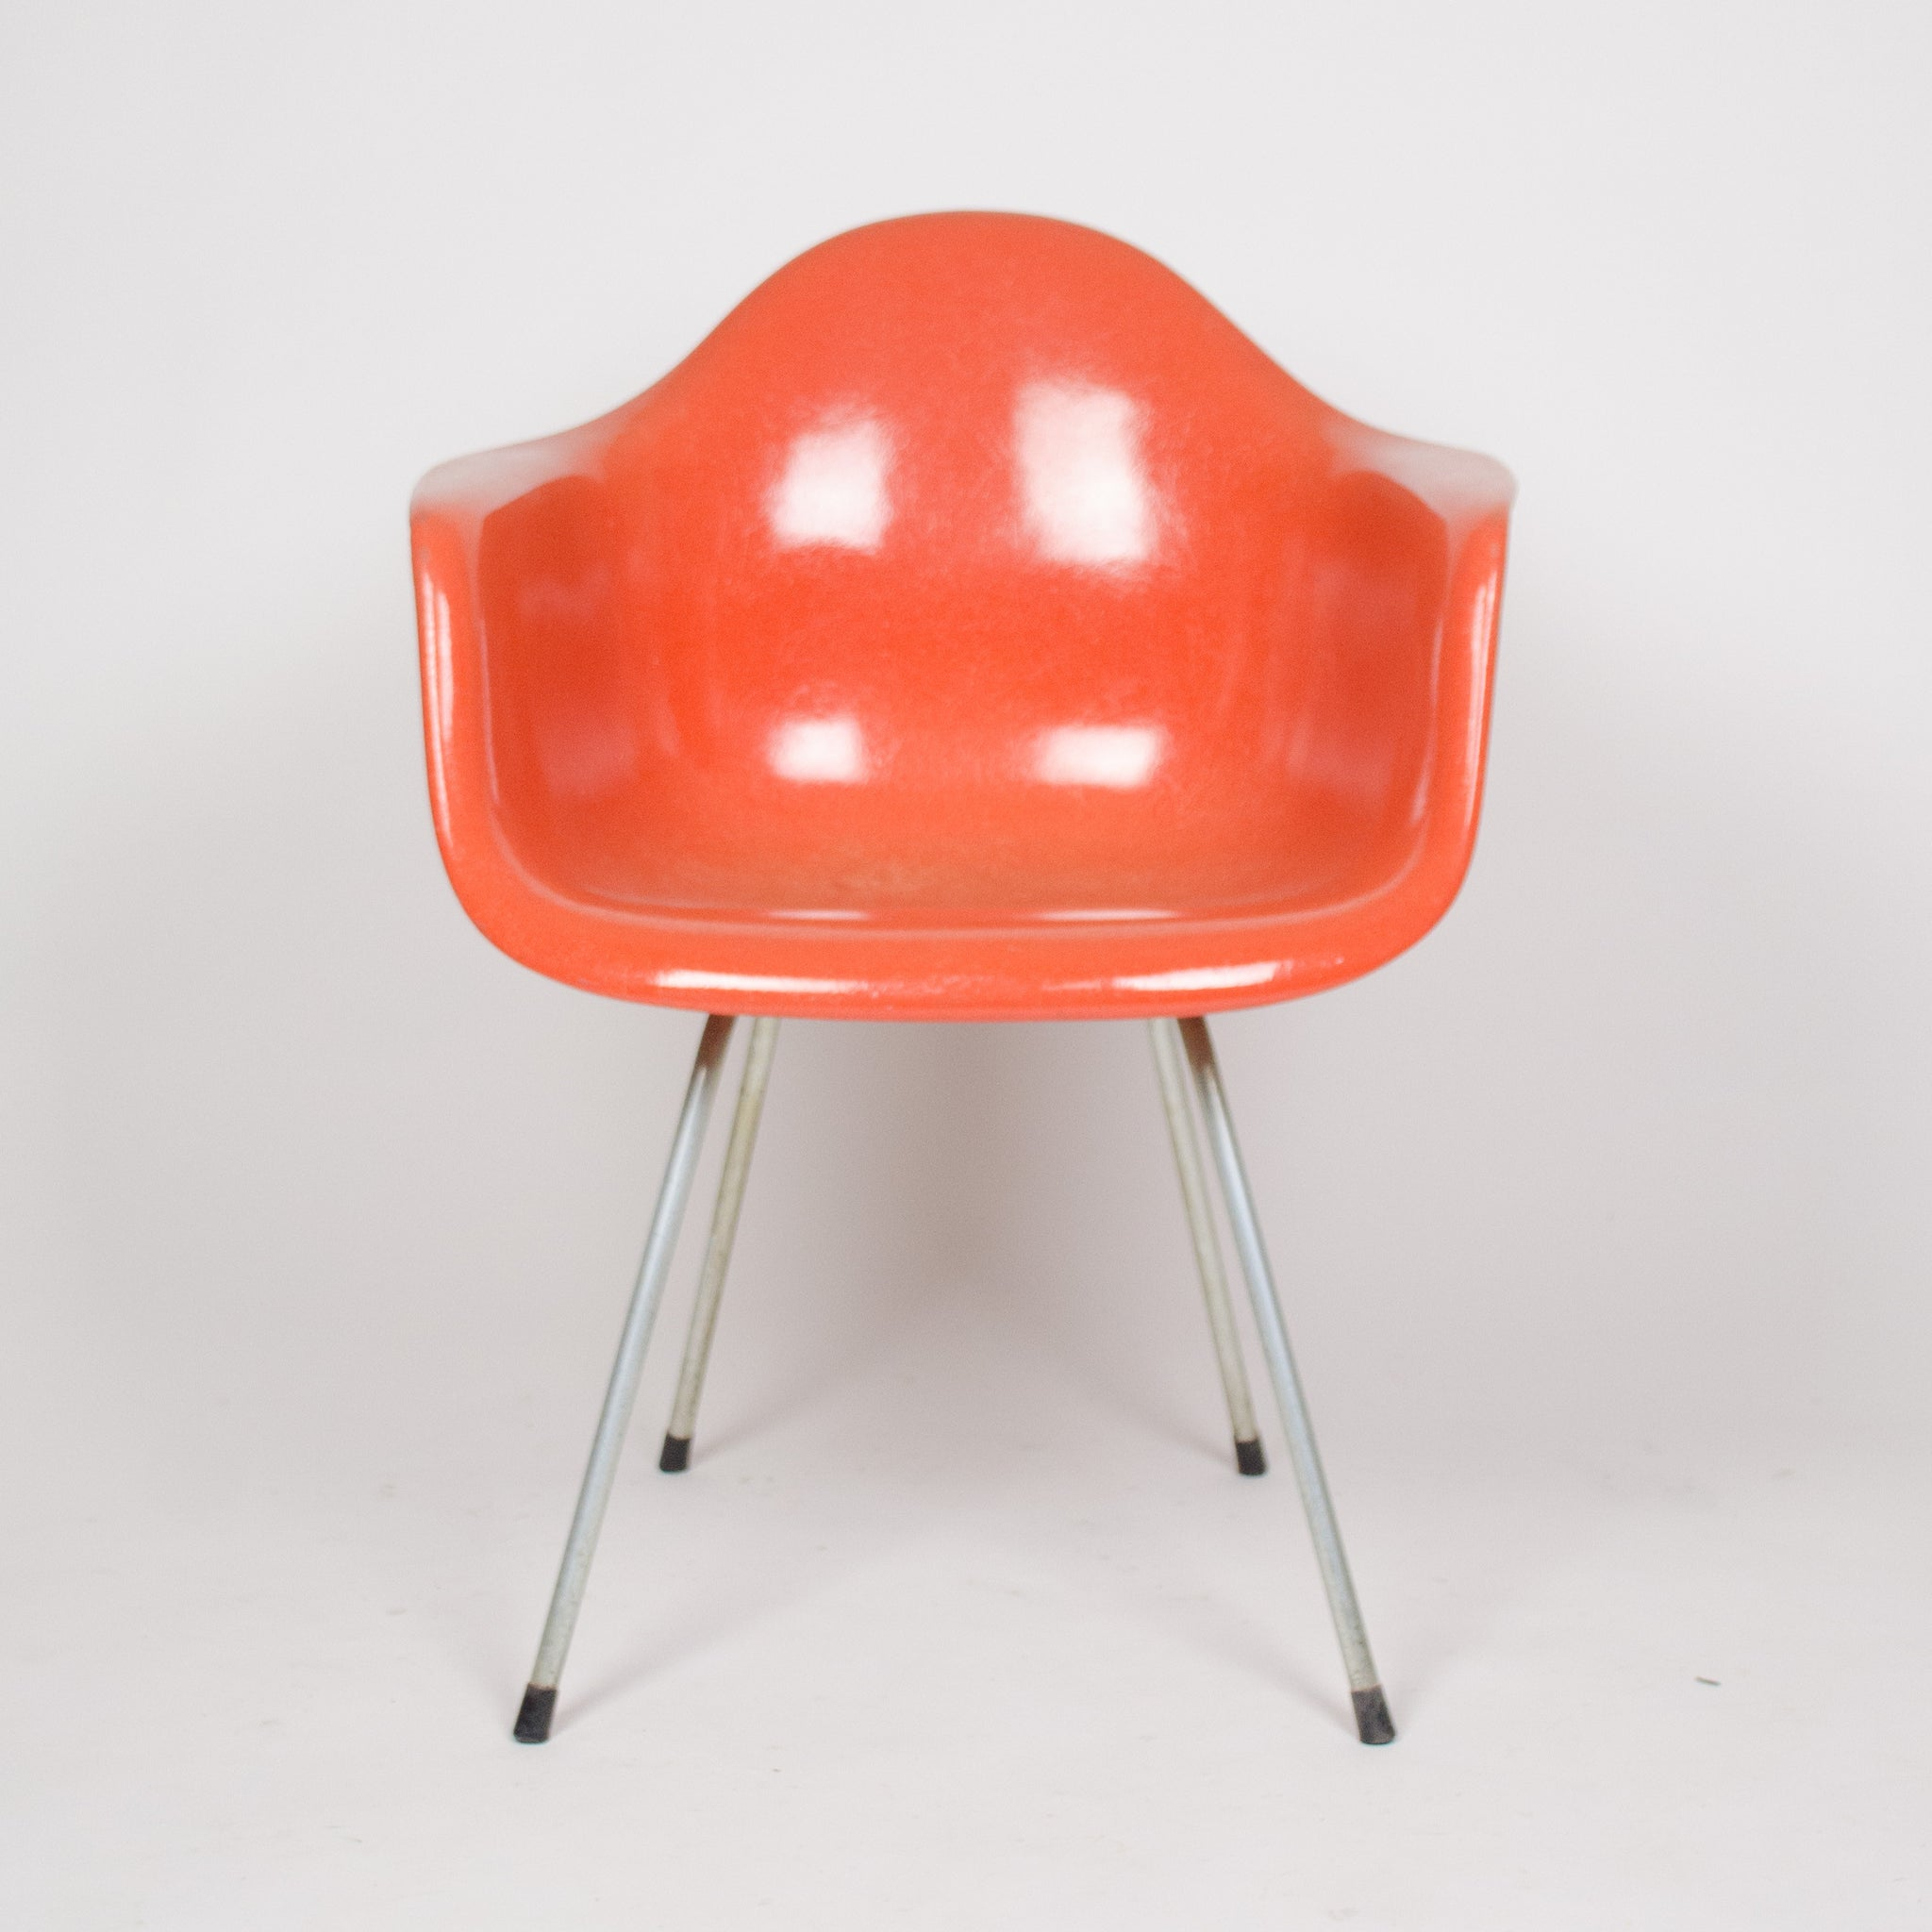 fiberglass shell chairs. 1960\u0027s eames herman miller red / orange fiberglass shell chairs arm shells s